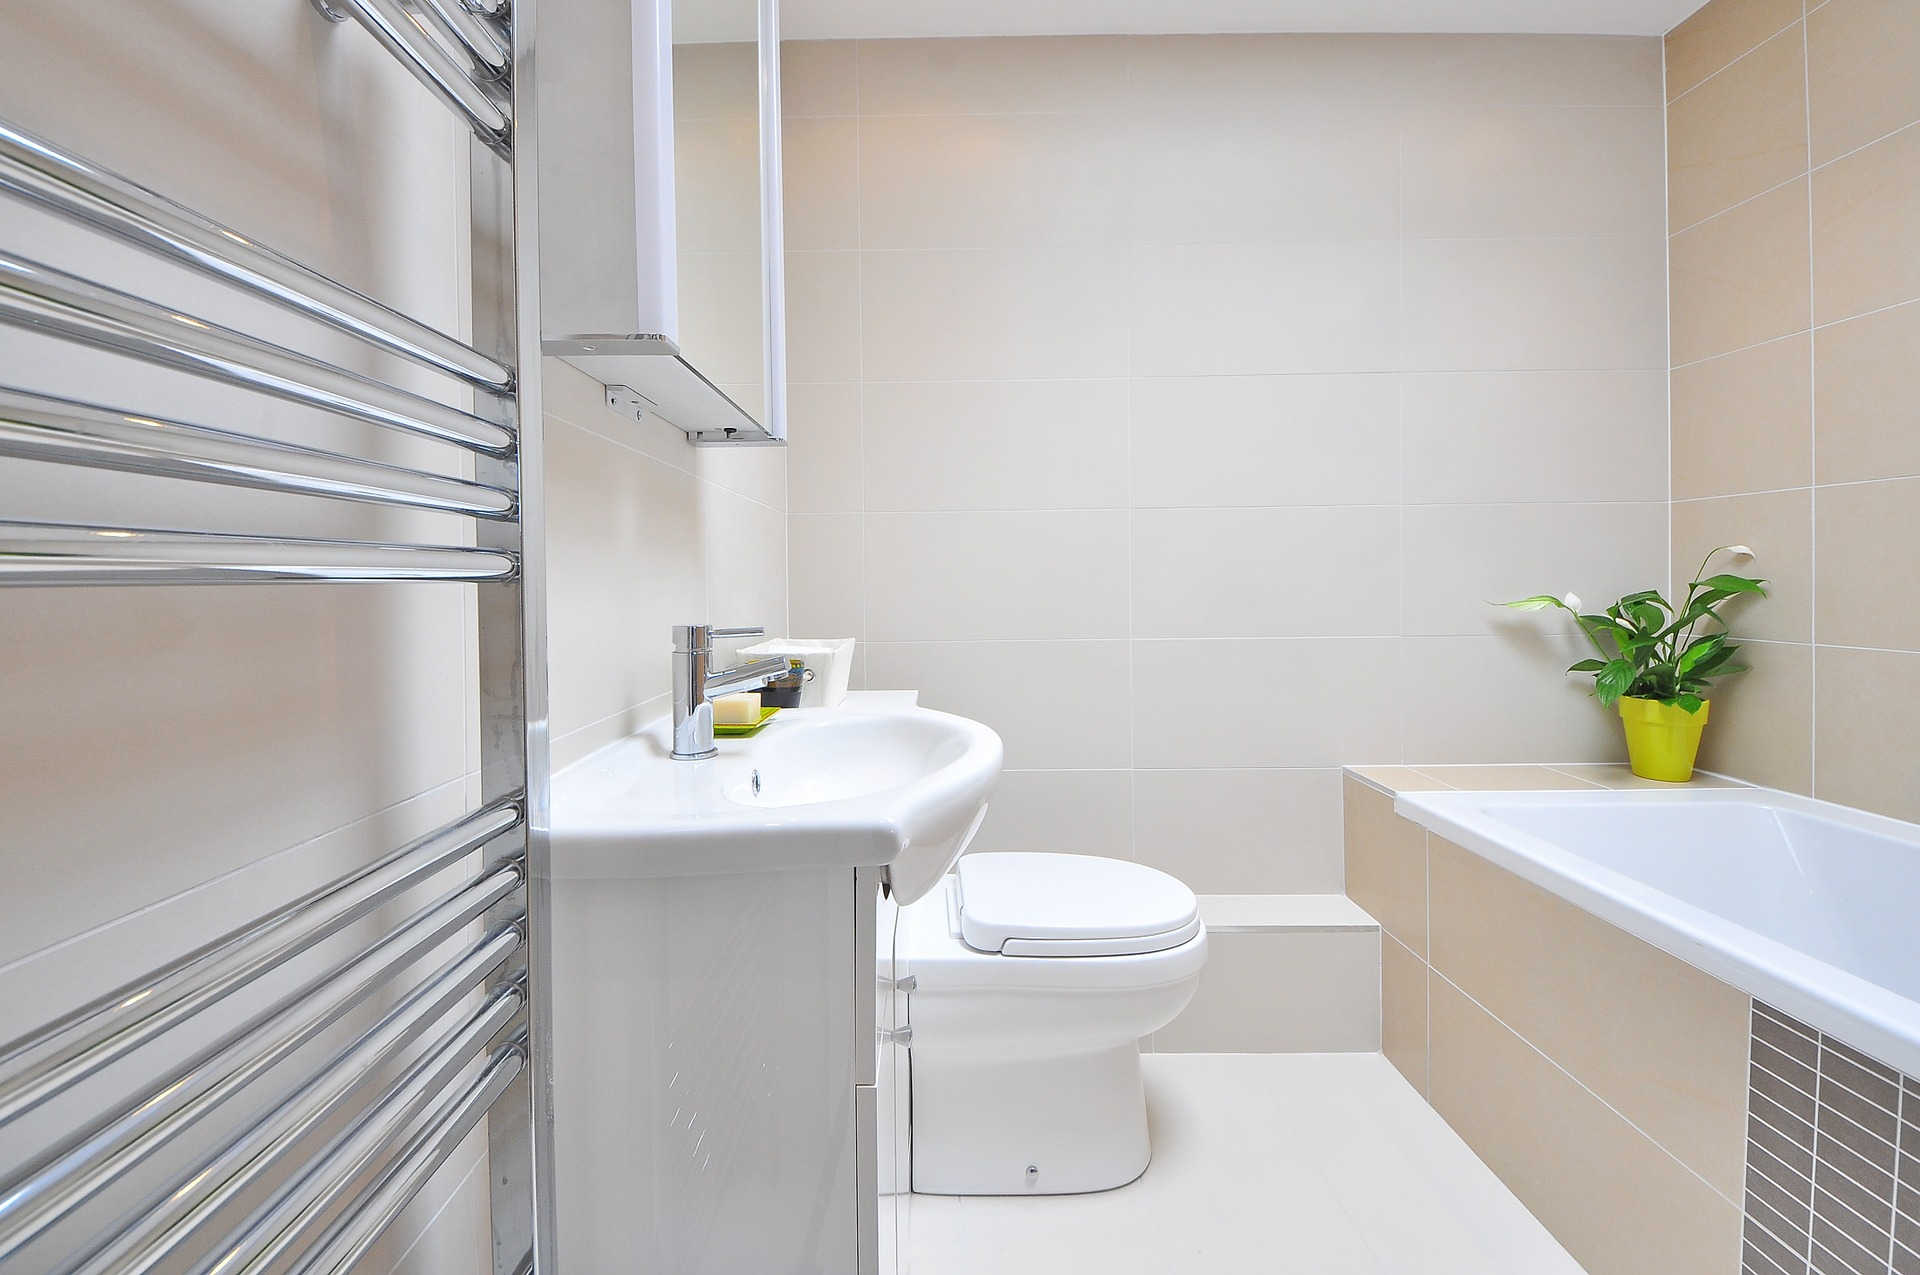 End of Tenancy Bathroom Cleaning Manchester